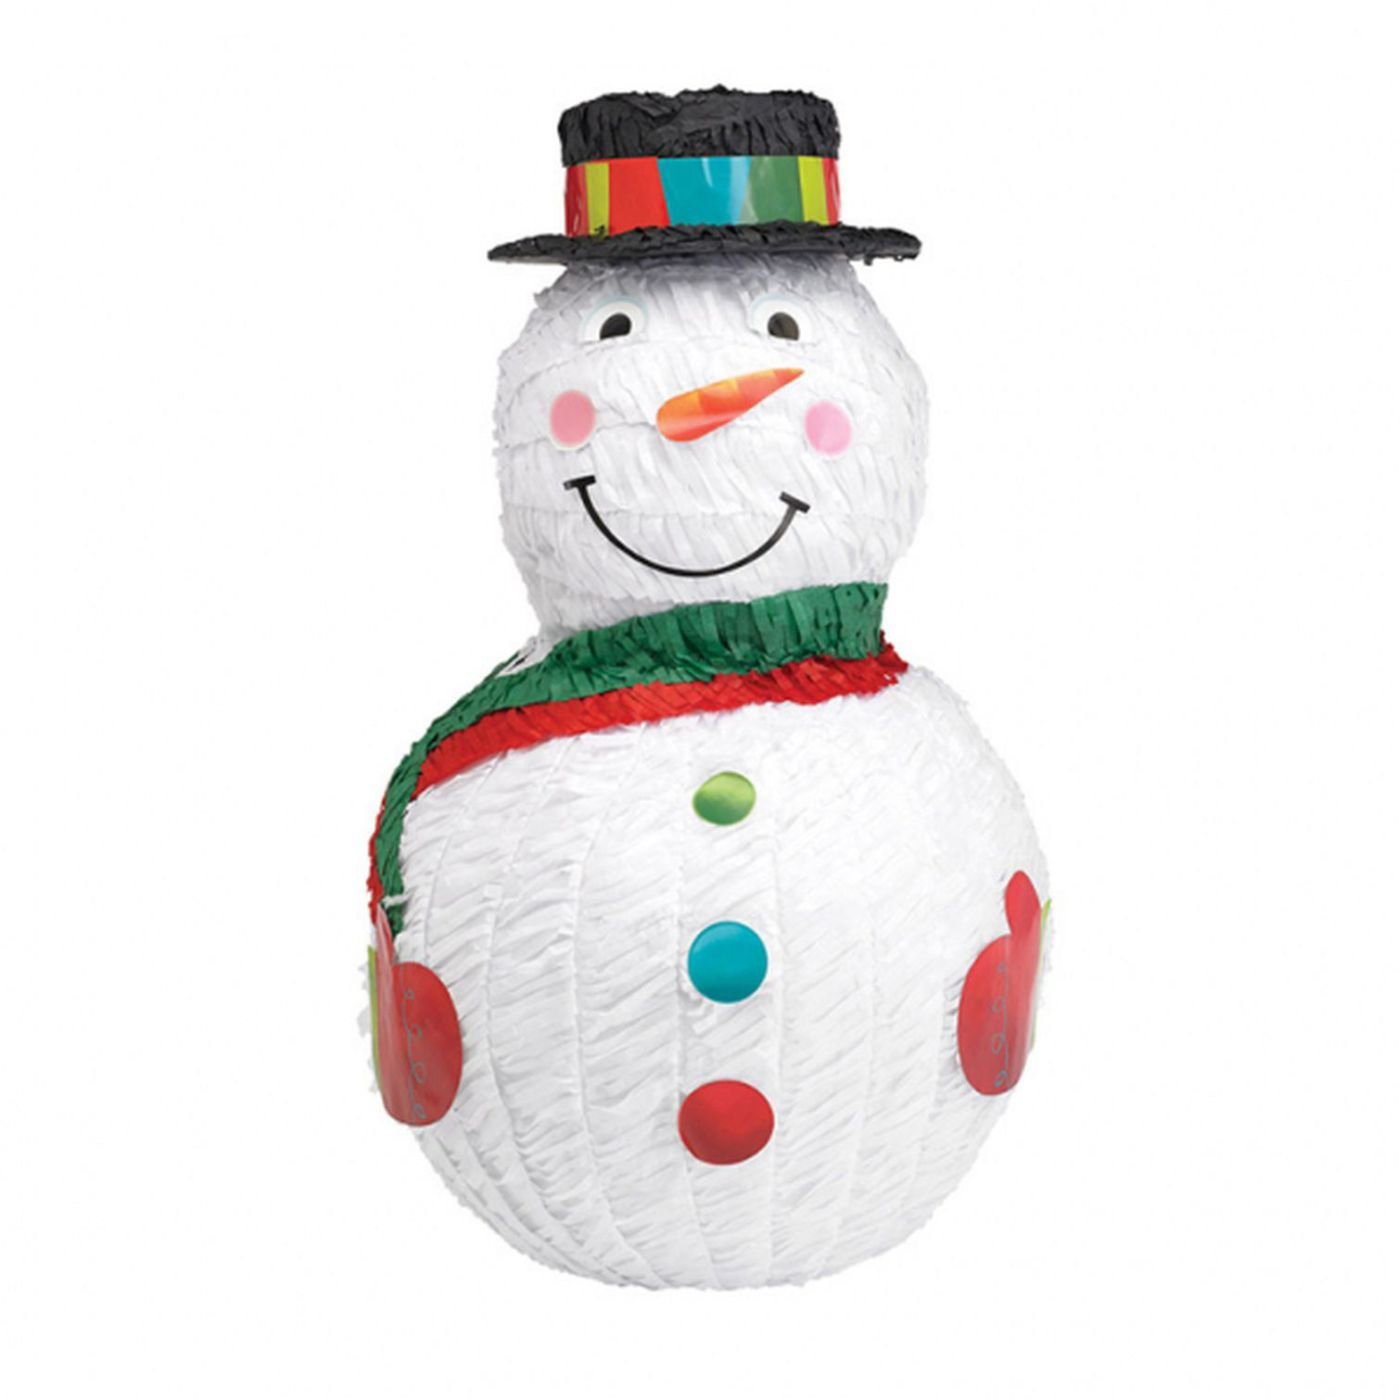 Snowman Shaped 17in x 11 1/2in Pinata